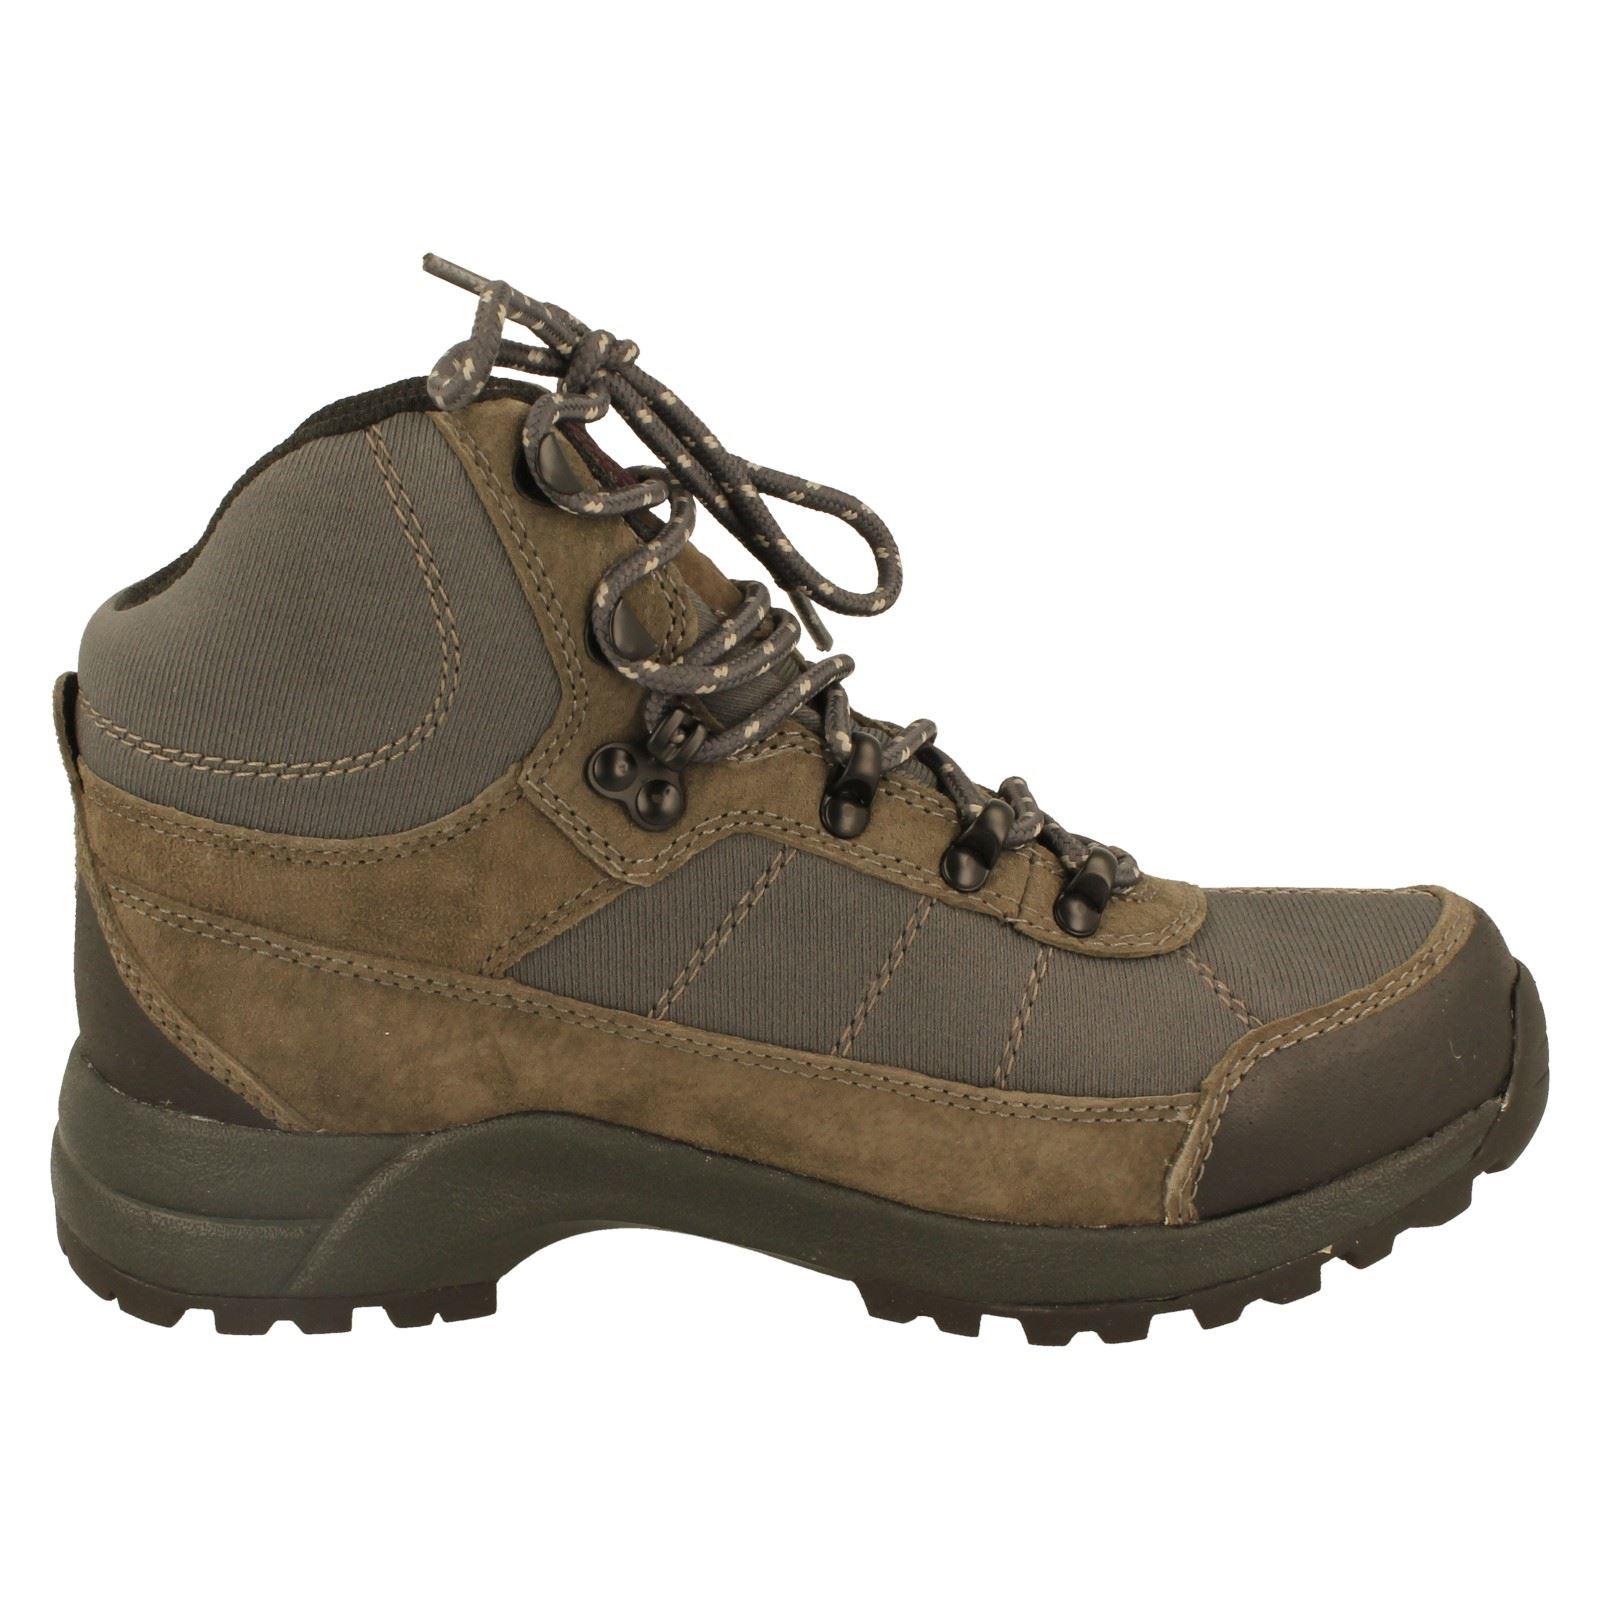 Awesome BRASHER WOMENS WALKING BOOTS GORETEX WATERPROOF HIKING LADIES KENAI